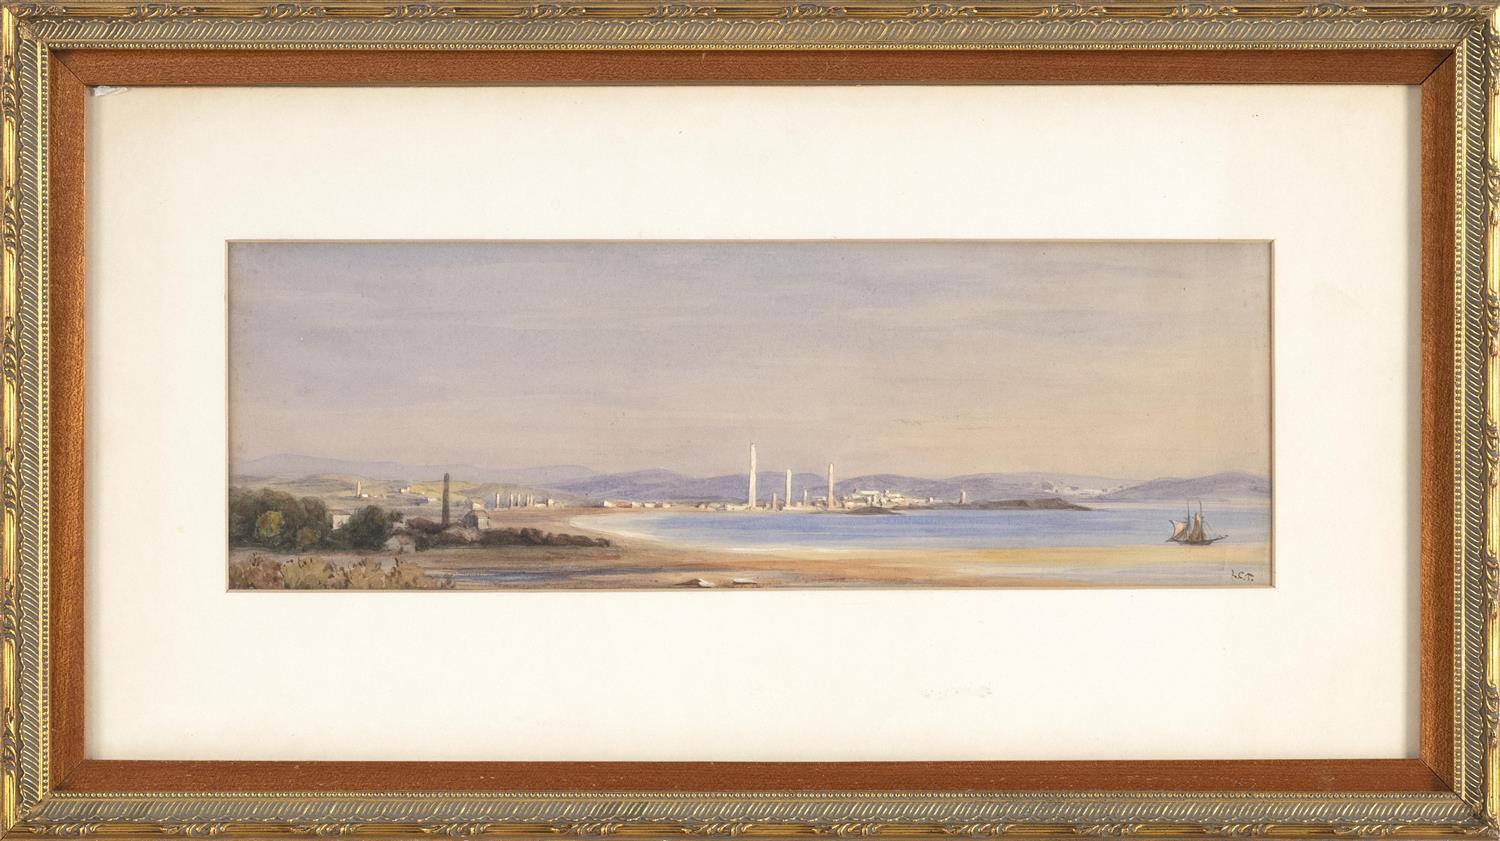 """LOUIS COMFORT TIFFANY, New York, 1848-1933, Coastal view of a North African town with three minarets., Watercolor, 4.5"""" x 13.5"""" sigh..."""